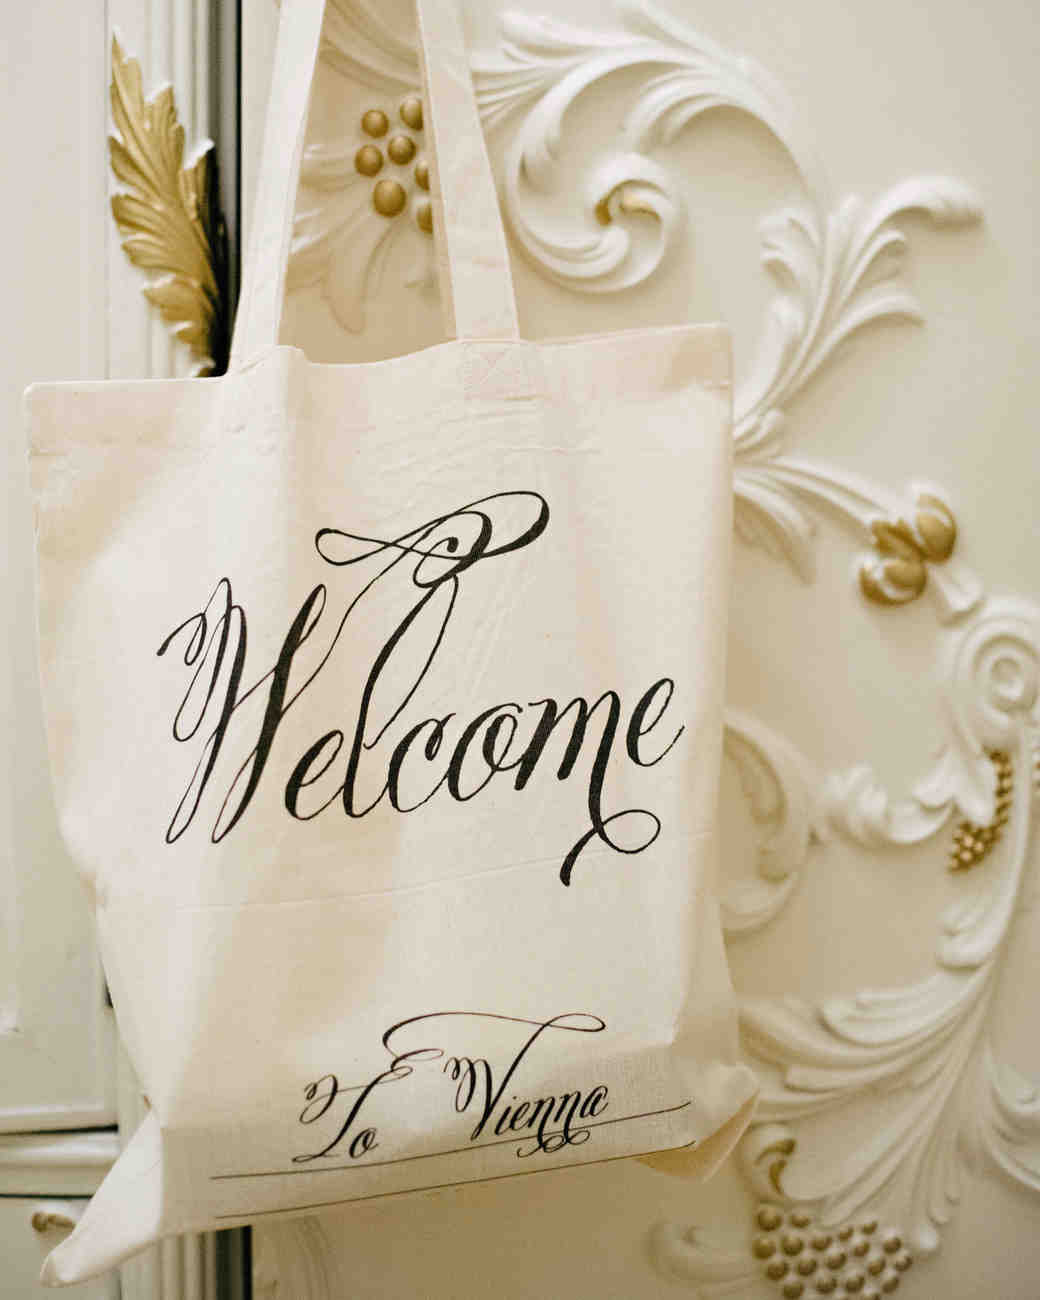 Destination Wedding Etiquette Gifts: 80 Welcome Bags From Real Weddings